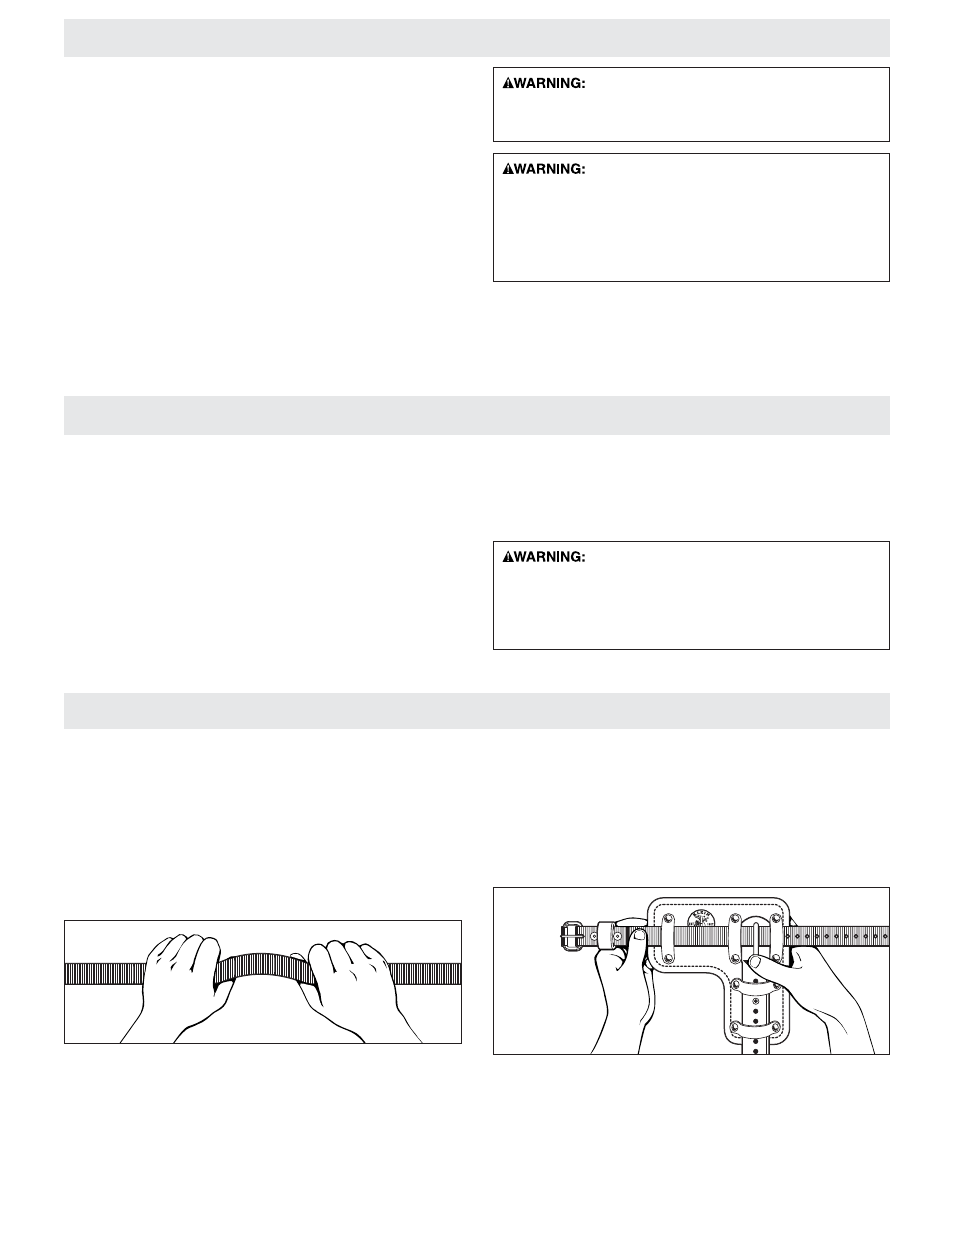 General inspection procedures, How to use klein pole and